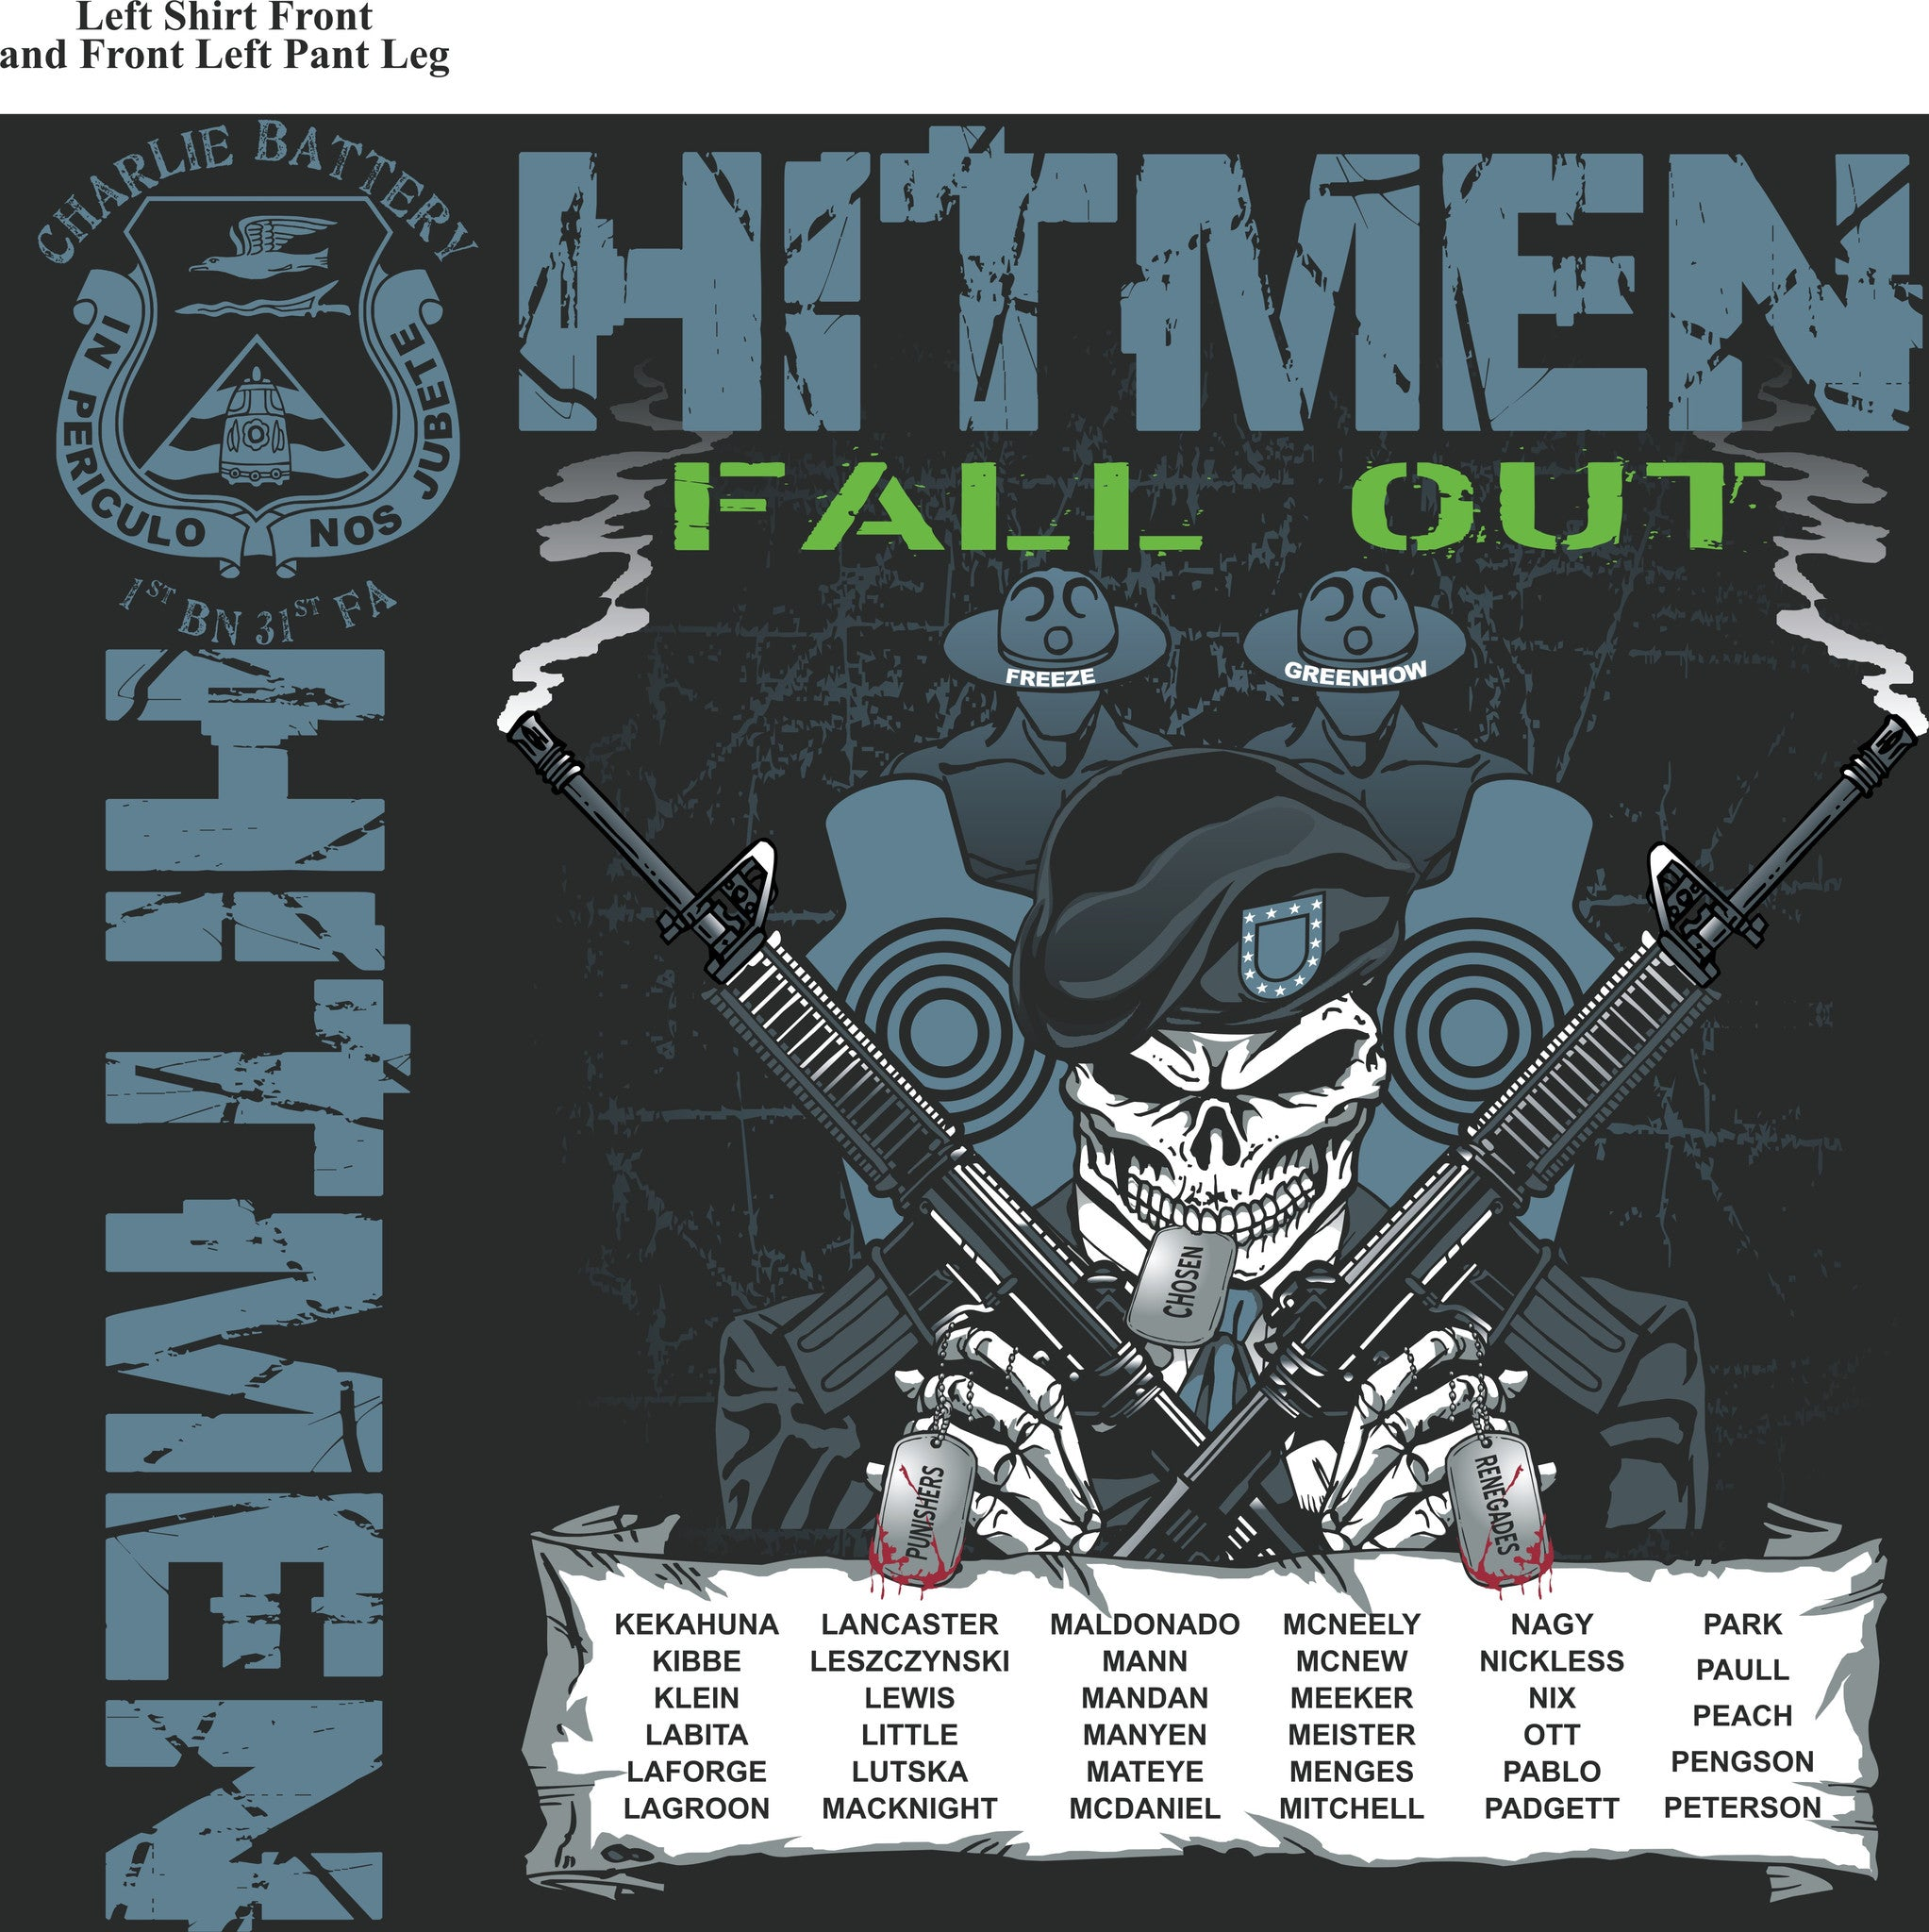 Platoon Shirts (digital) CHARLIE 1st 31st HITMEN JULY 2015